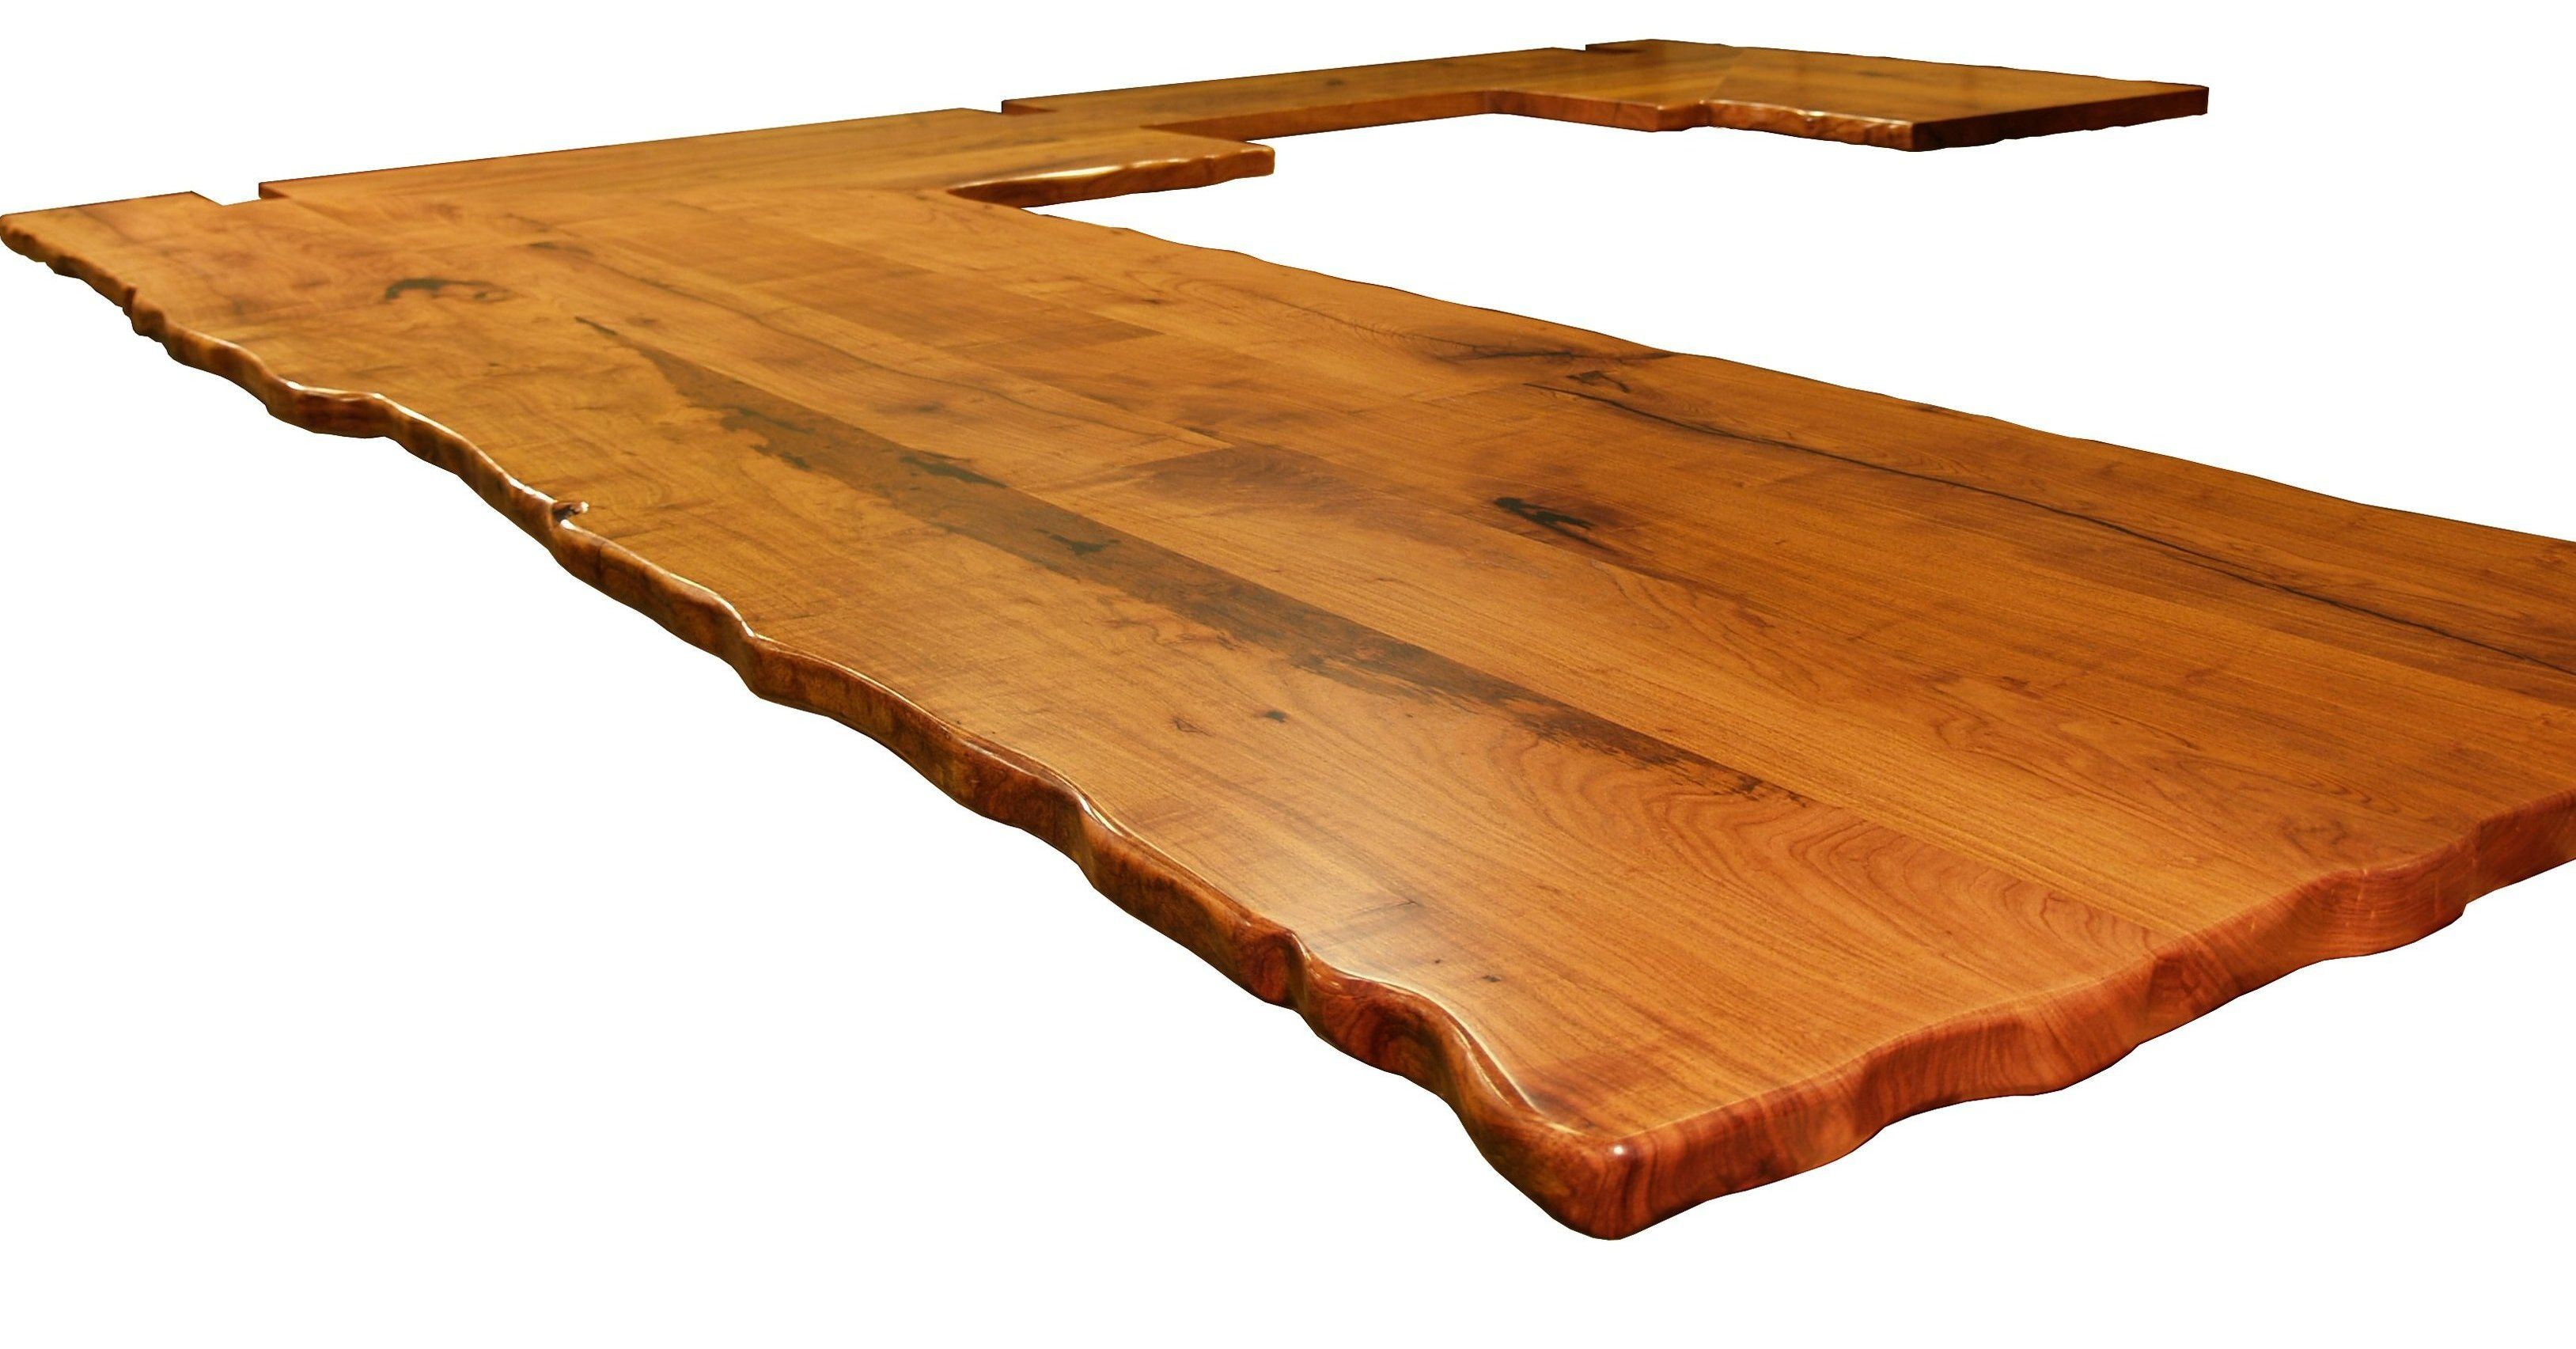 on top table designing slab natural oil tops wane tung custom a wood with citrus edges pecan and countertops finish